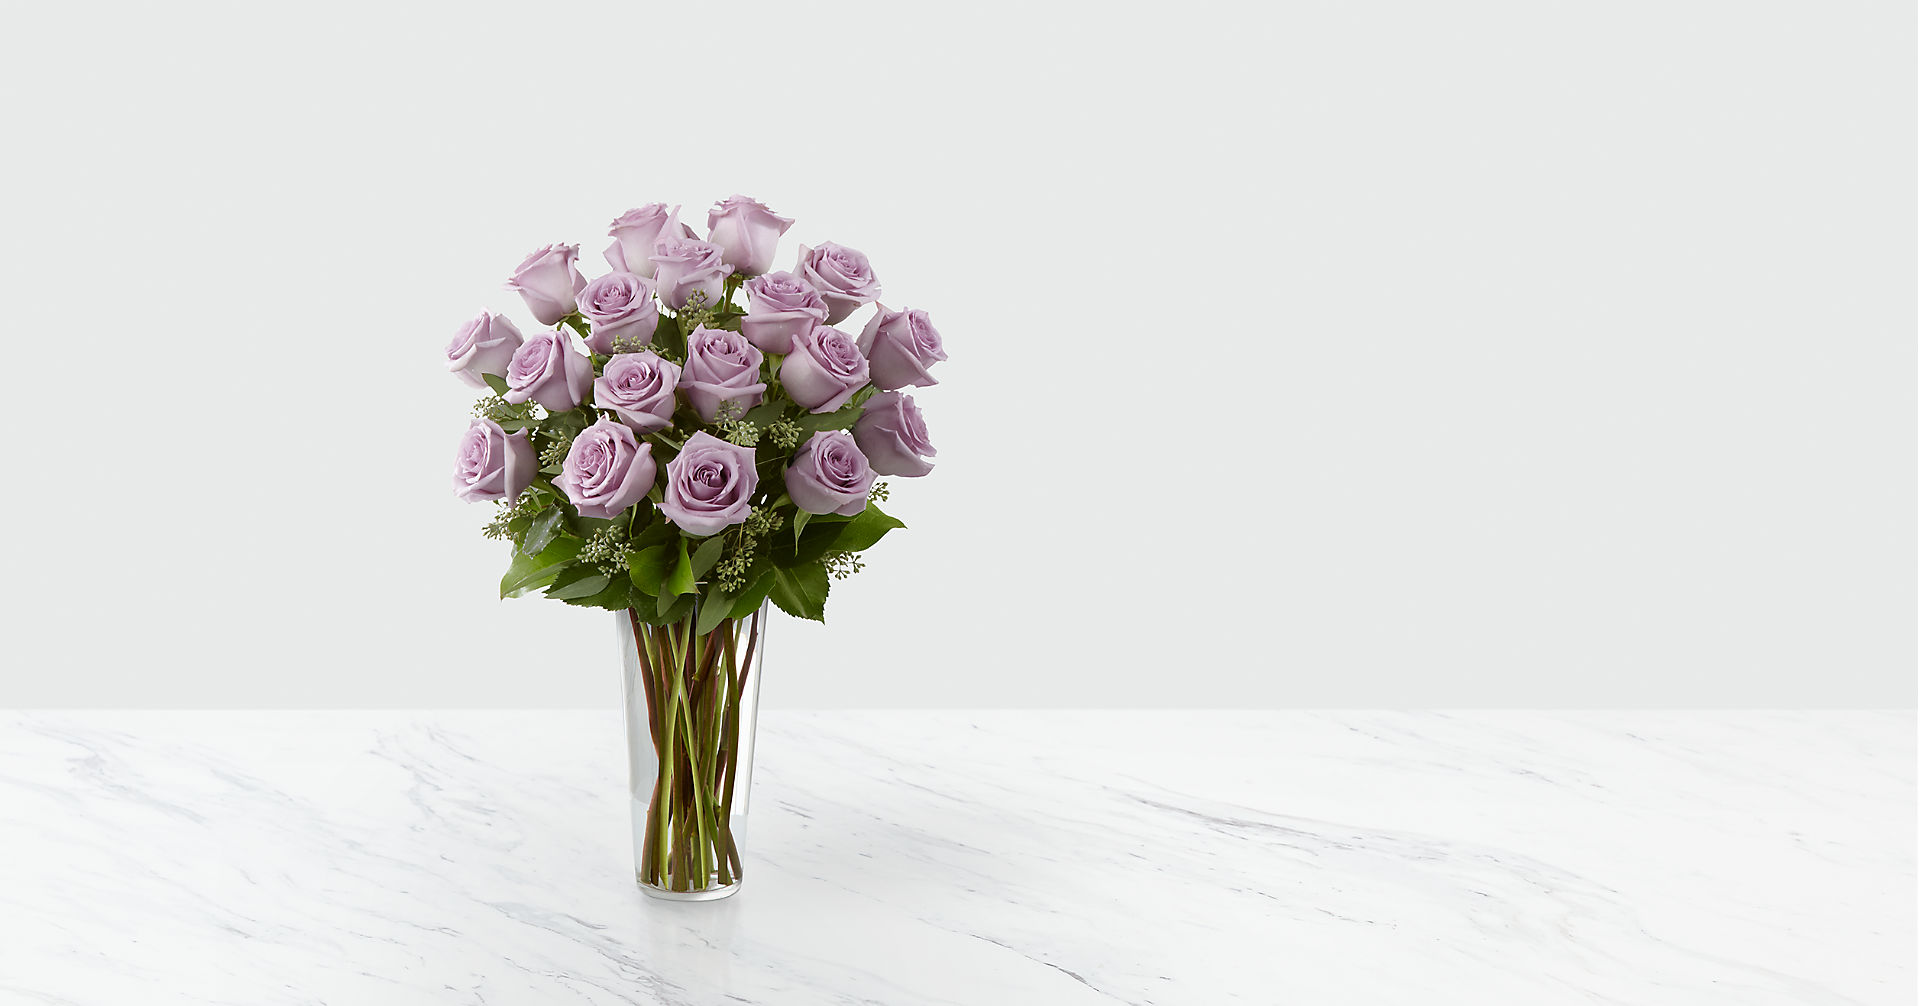 The Lavender Rose Bouquet - Image 1 Of 2